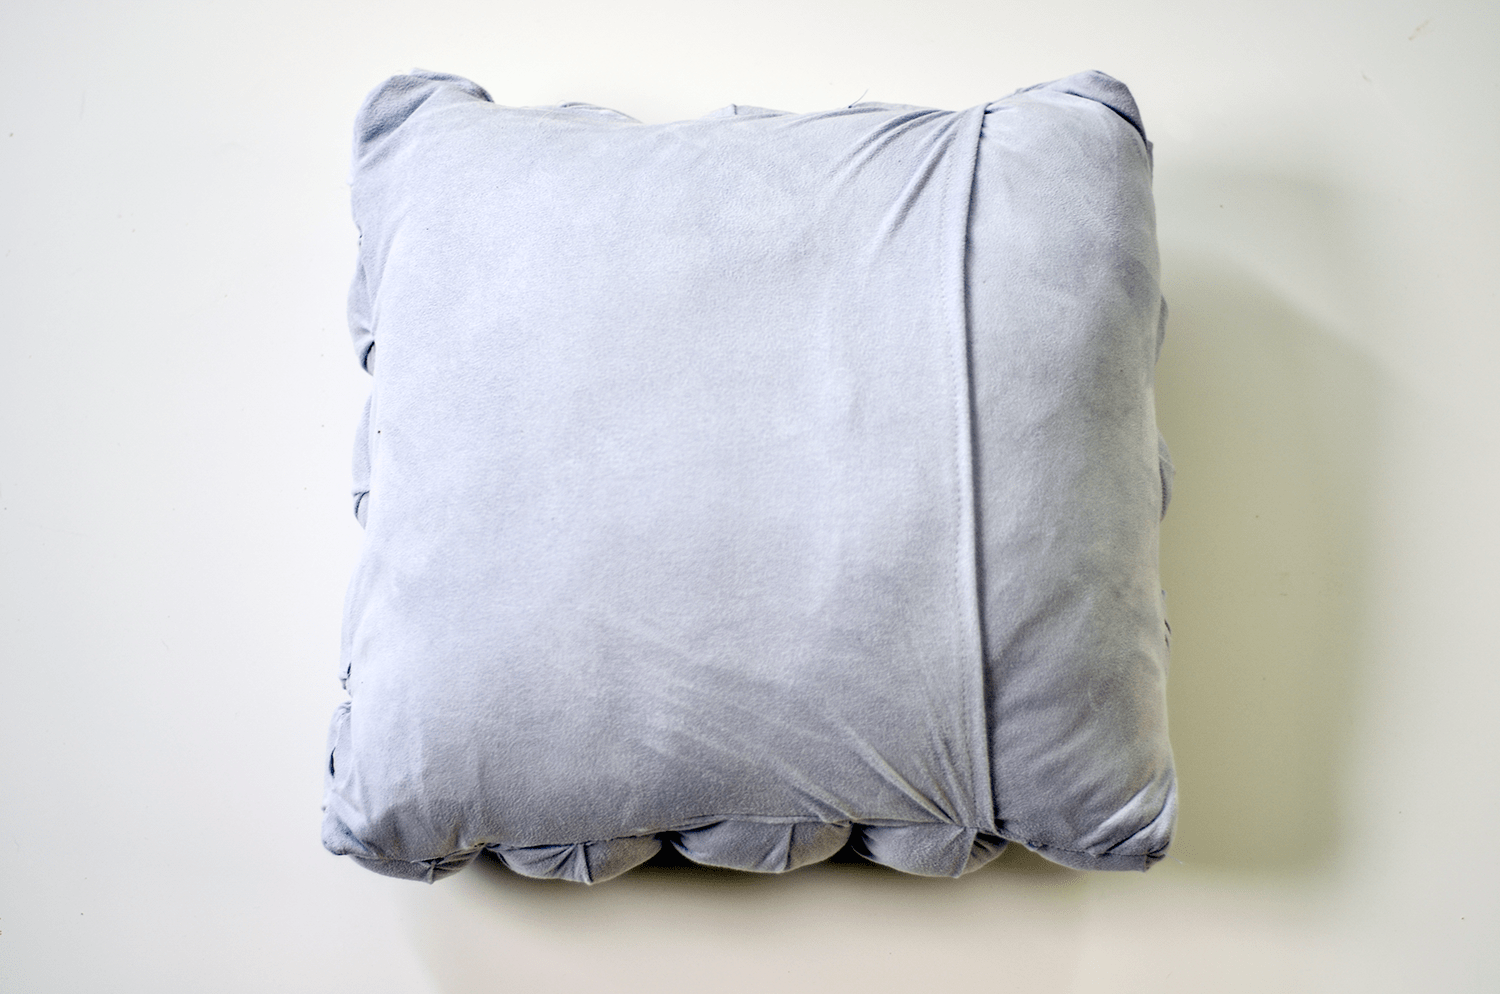 Make Your Own Puff Quilted Pillow Cover - Add Pillow Insert